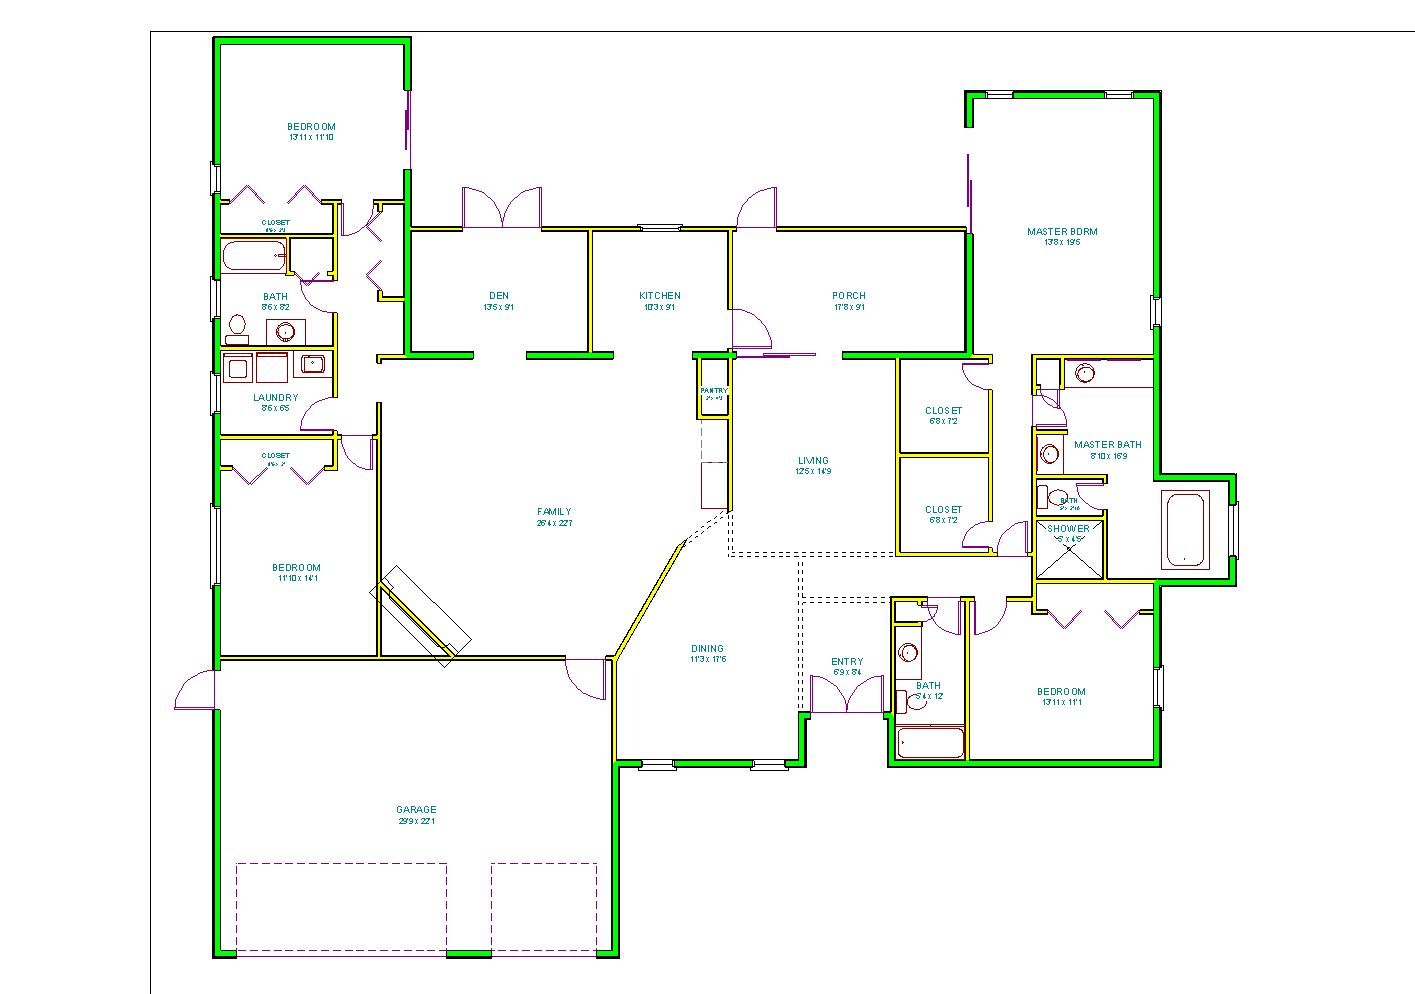 Fun with floor plans huebsch house chronicles for Design a house online for fun